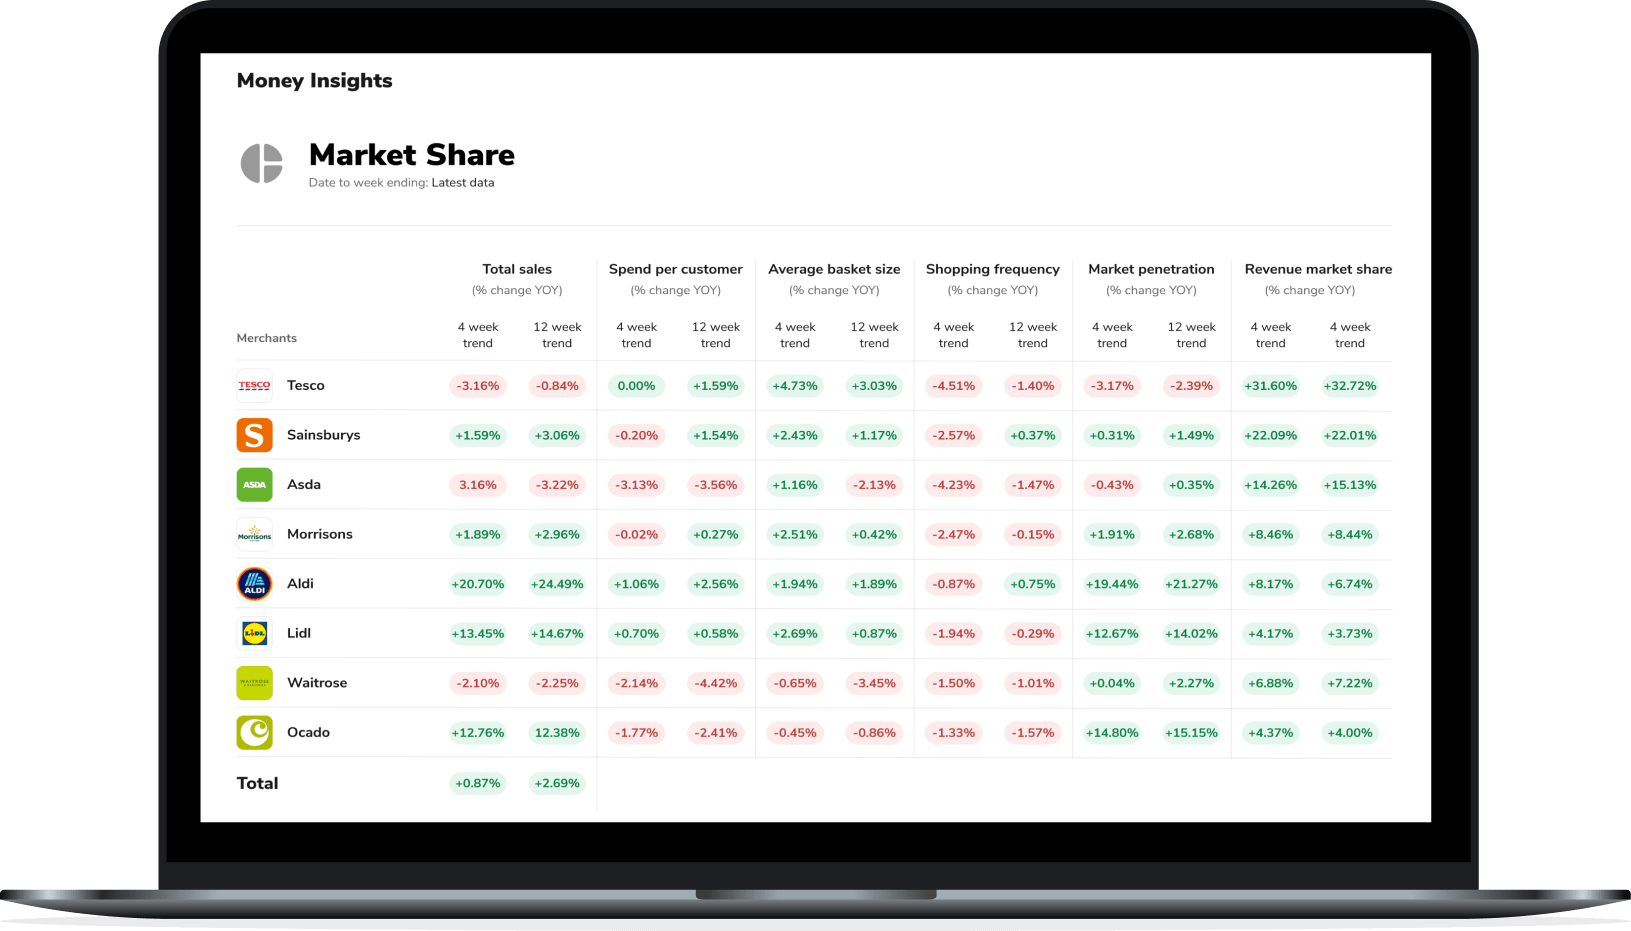 Laptop screen show casing market share data for UK supermarkets provided by Money Dashboard's Money Insights